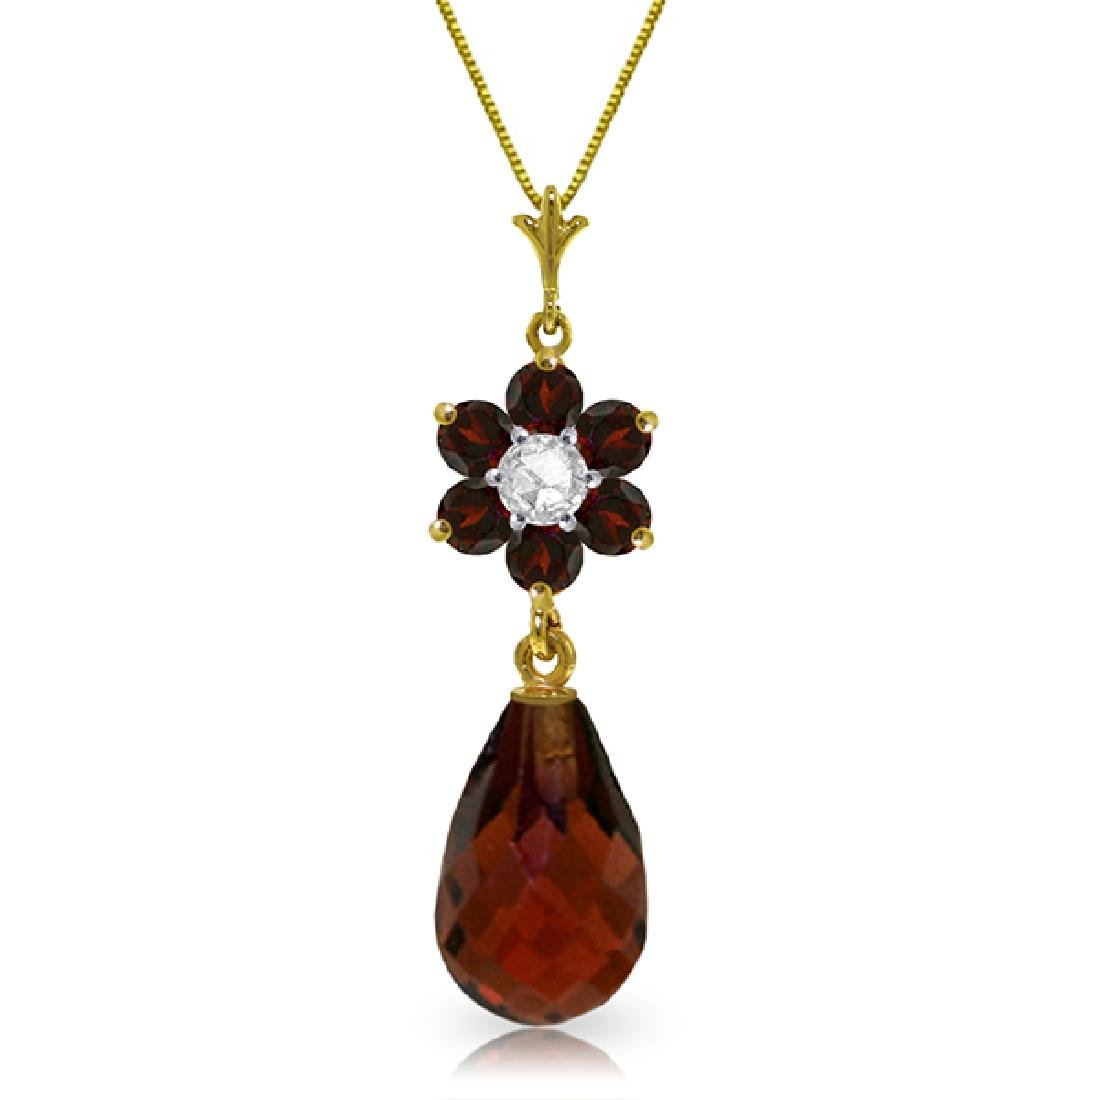 Genuine 2.78 ctw Garnet & Diamond Necklace Jewelry 14KT